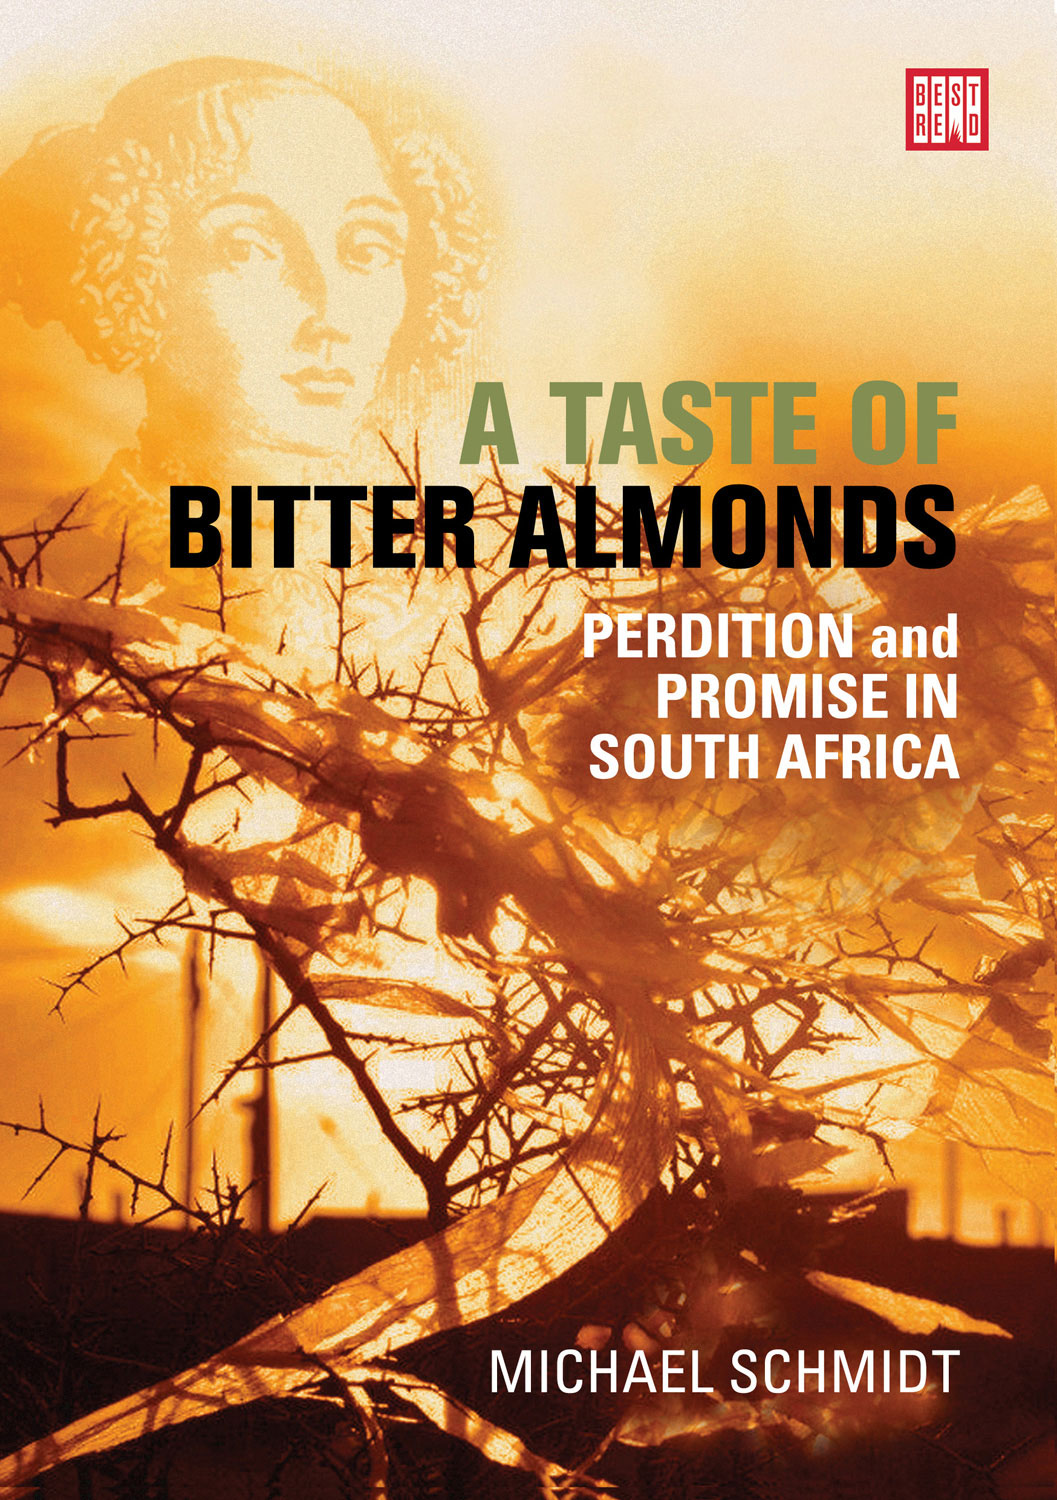 A Taste of Bitter Almonds: Perdition and Promise in South Africa